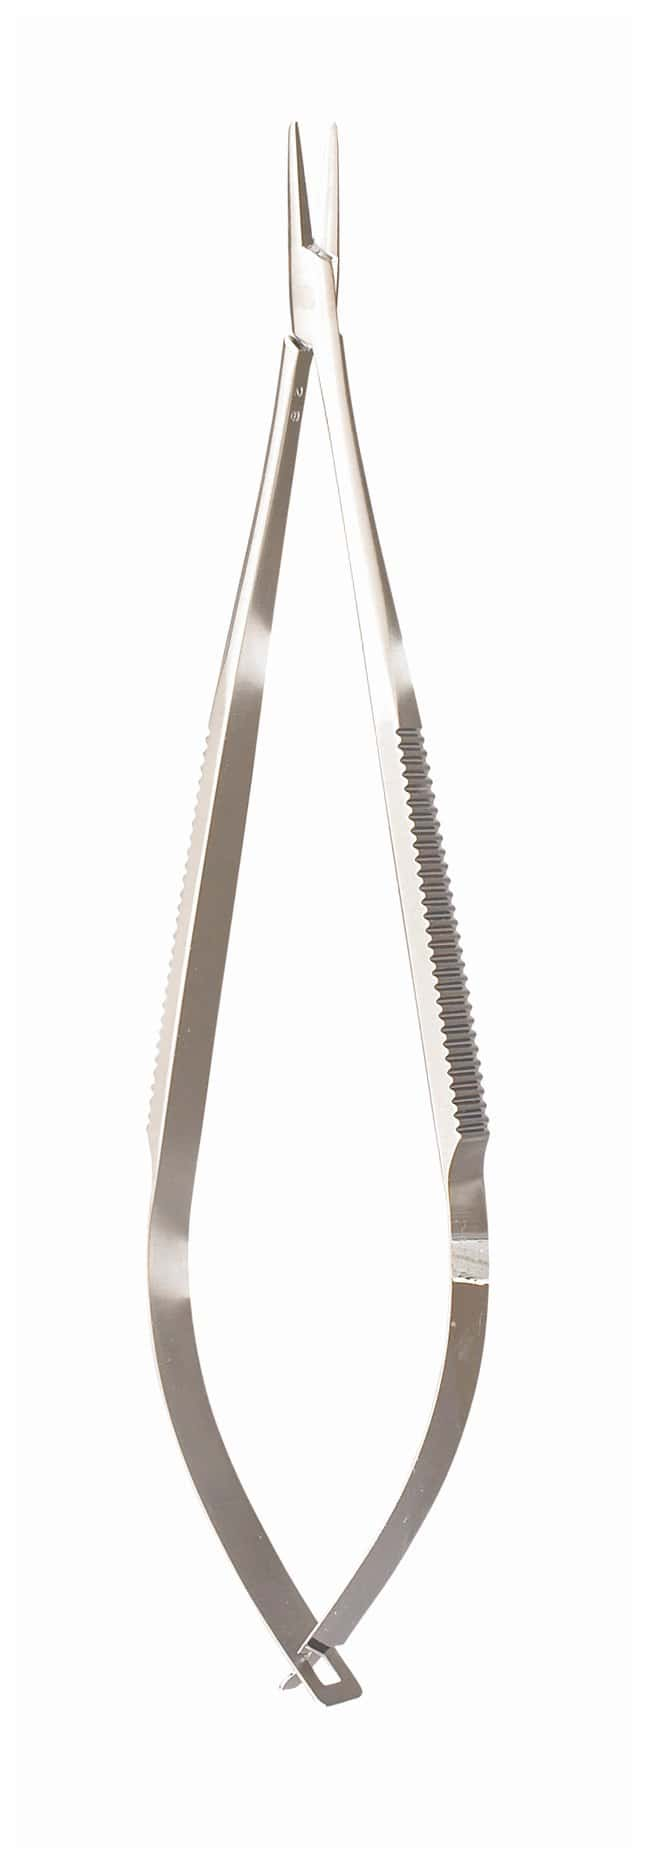 Integra MiltexCastroviejo Needle Holders Straight; Without lock; 5.5 in.